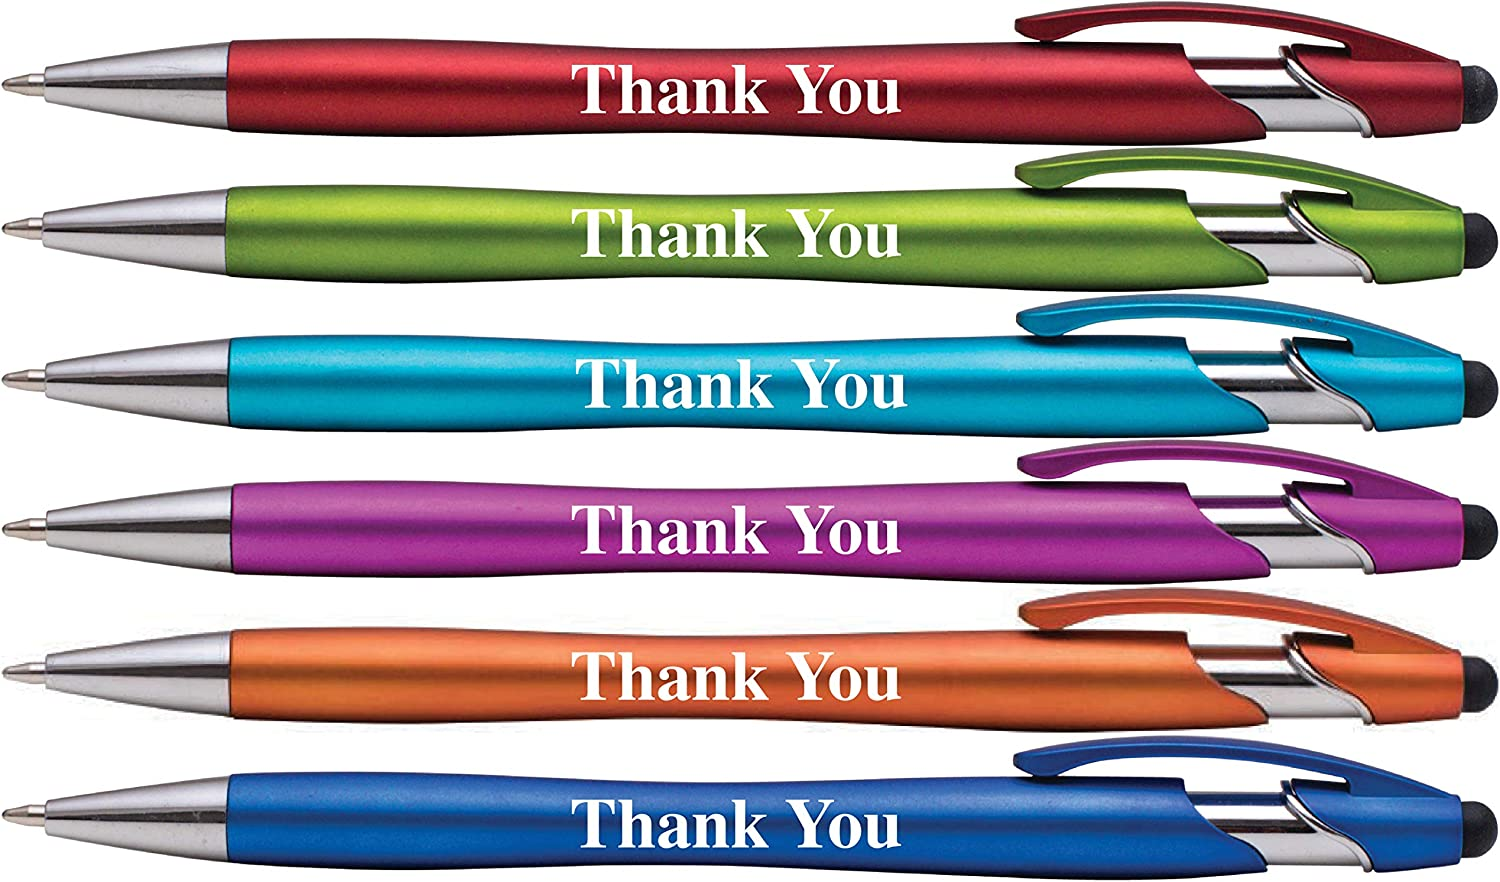 """""""Thank You"""" Gift Stylus Pens For All TouchScreen Devices - 2 in 1 Combo Pen for Events, Parties, Employee Appreciation & More (6 Pack)"""